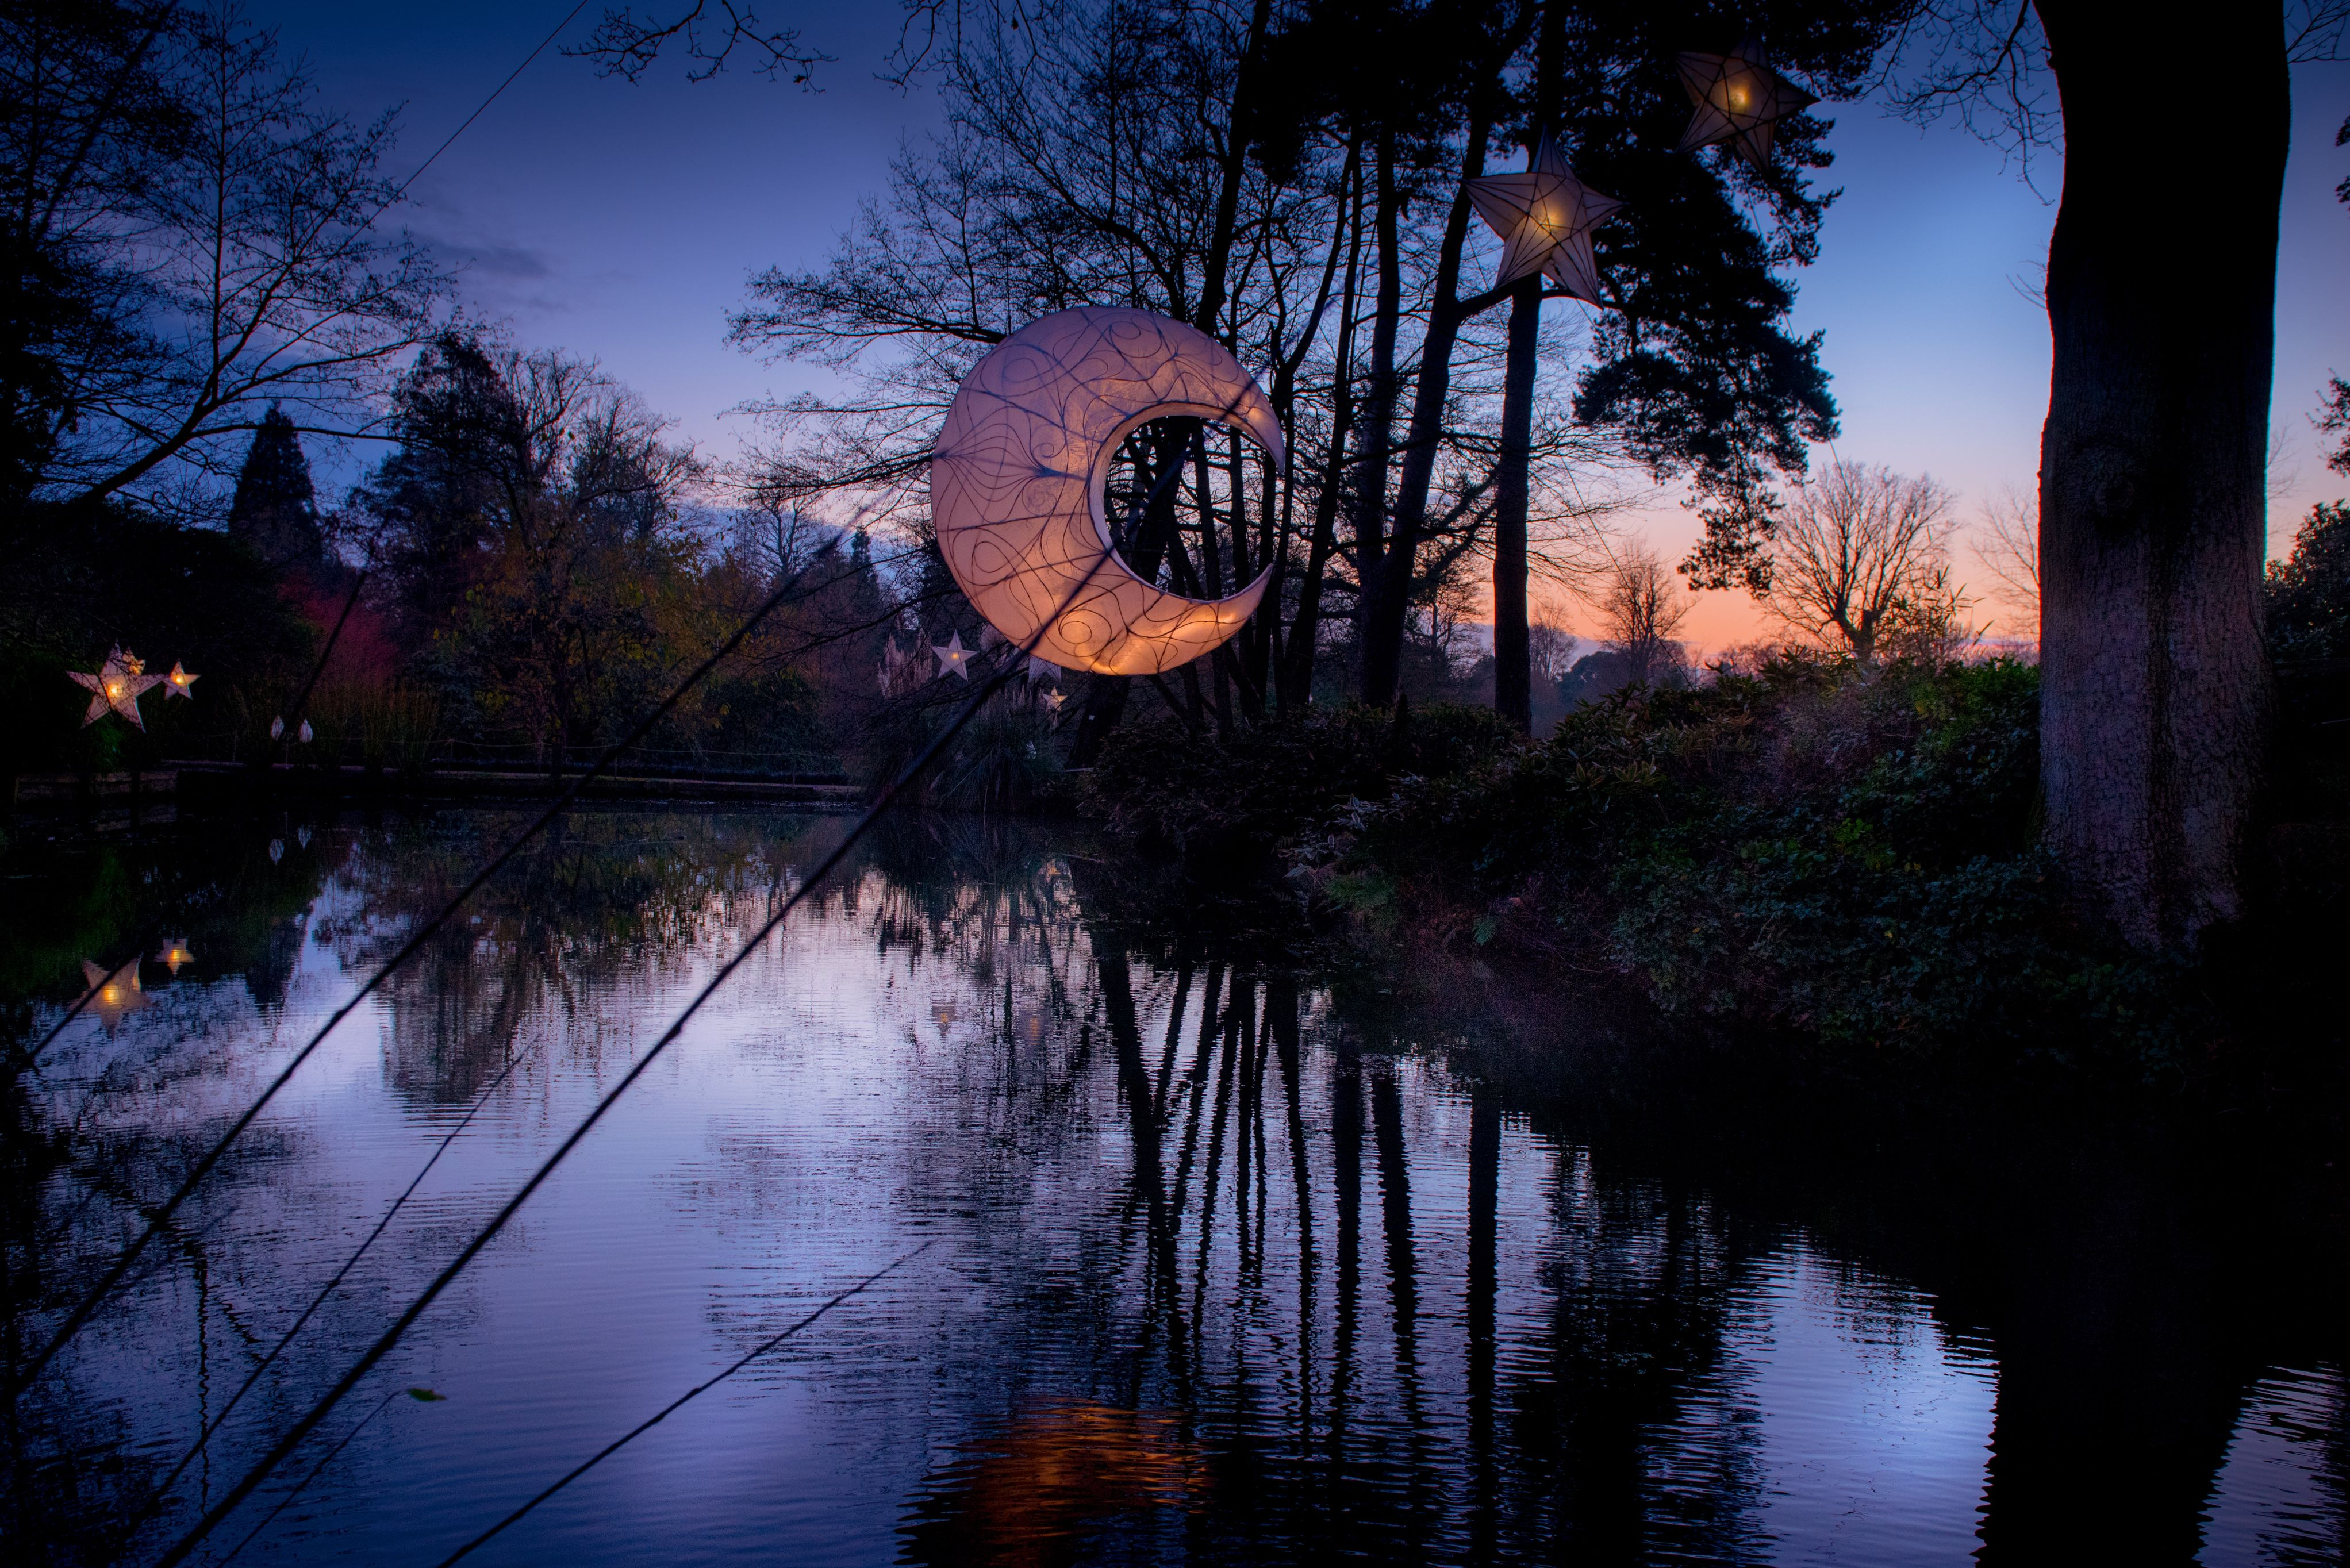 Moon lantern hanging over the Black Pond at Wakehurst during the Glow Wild festival